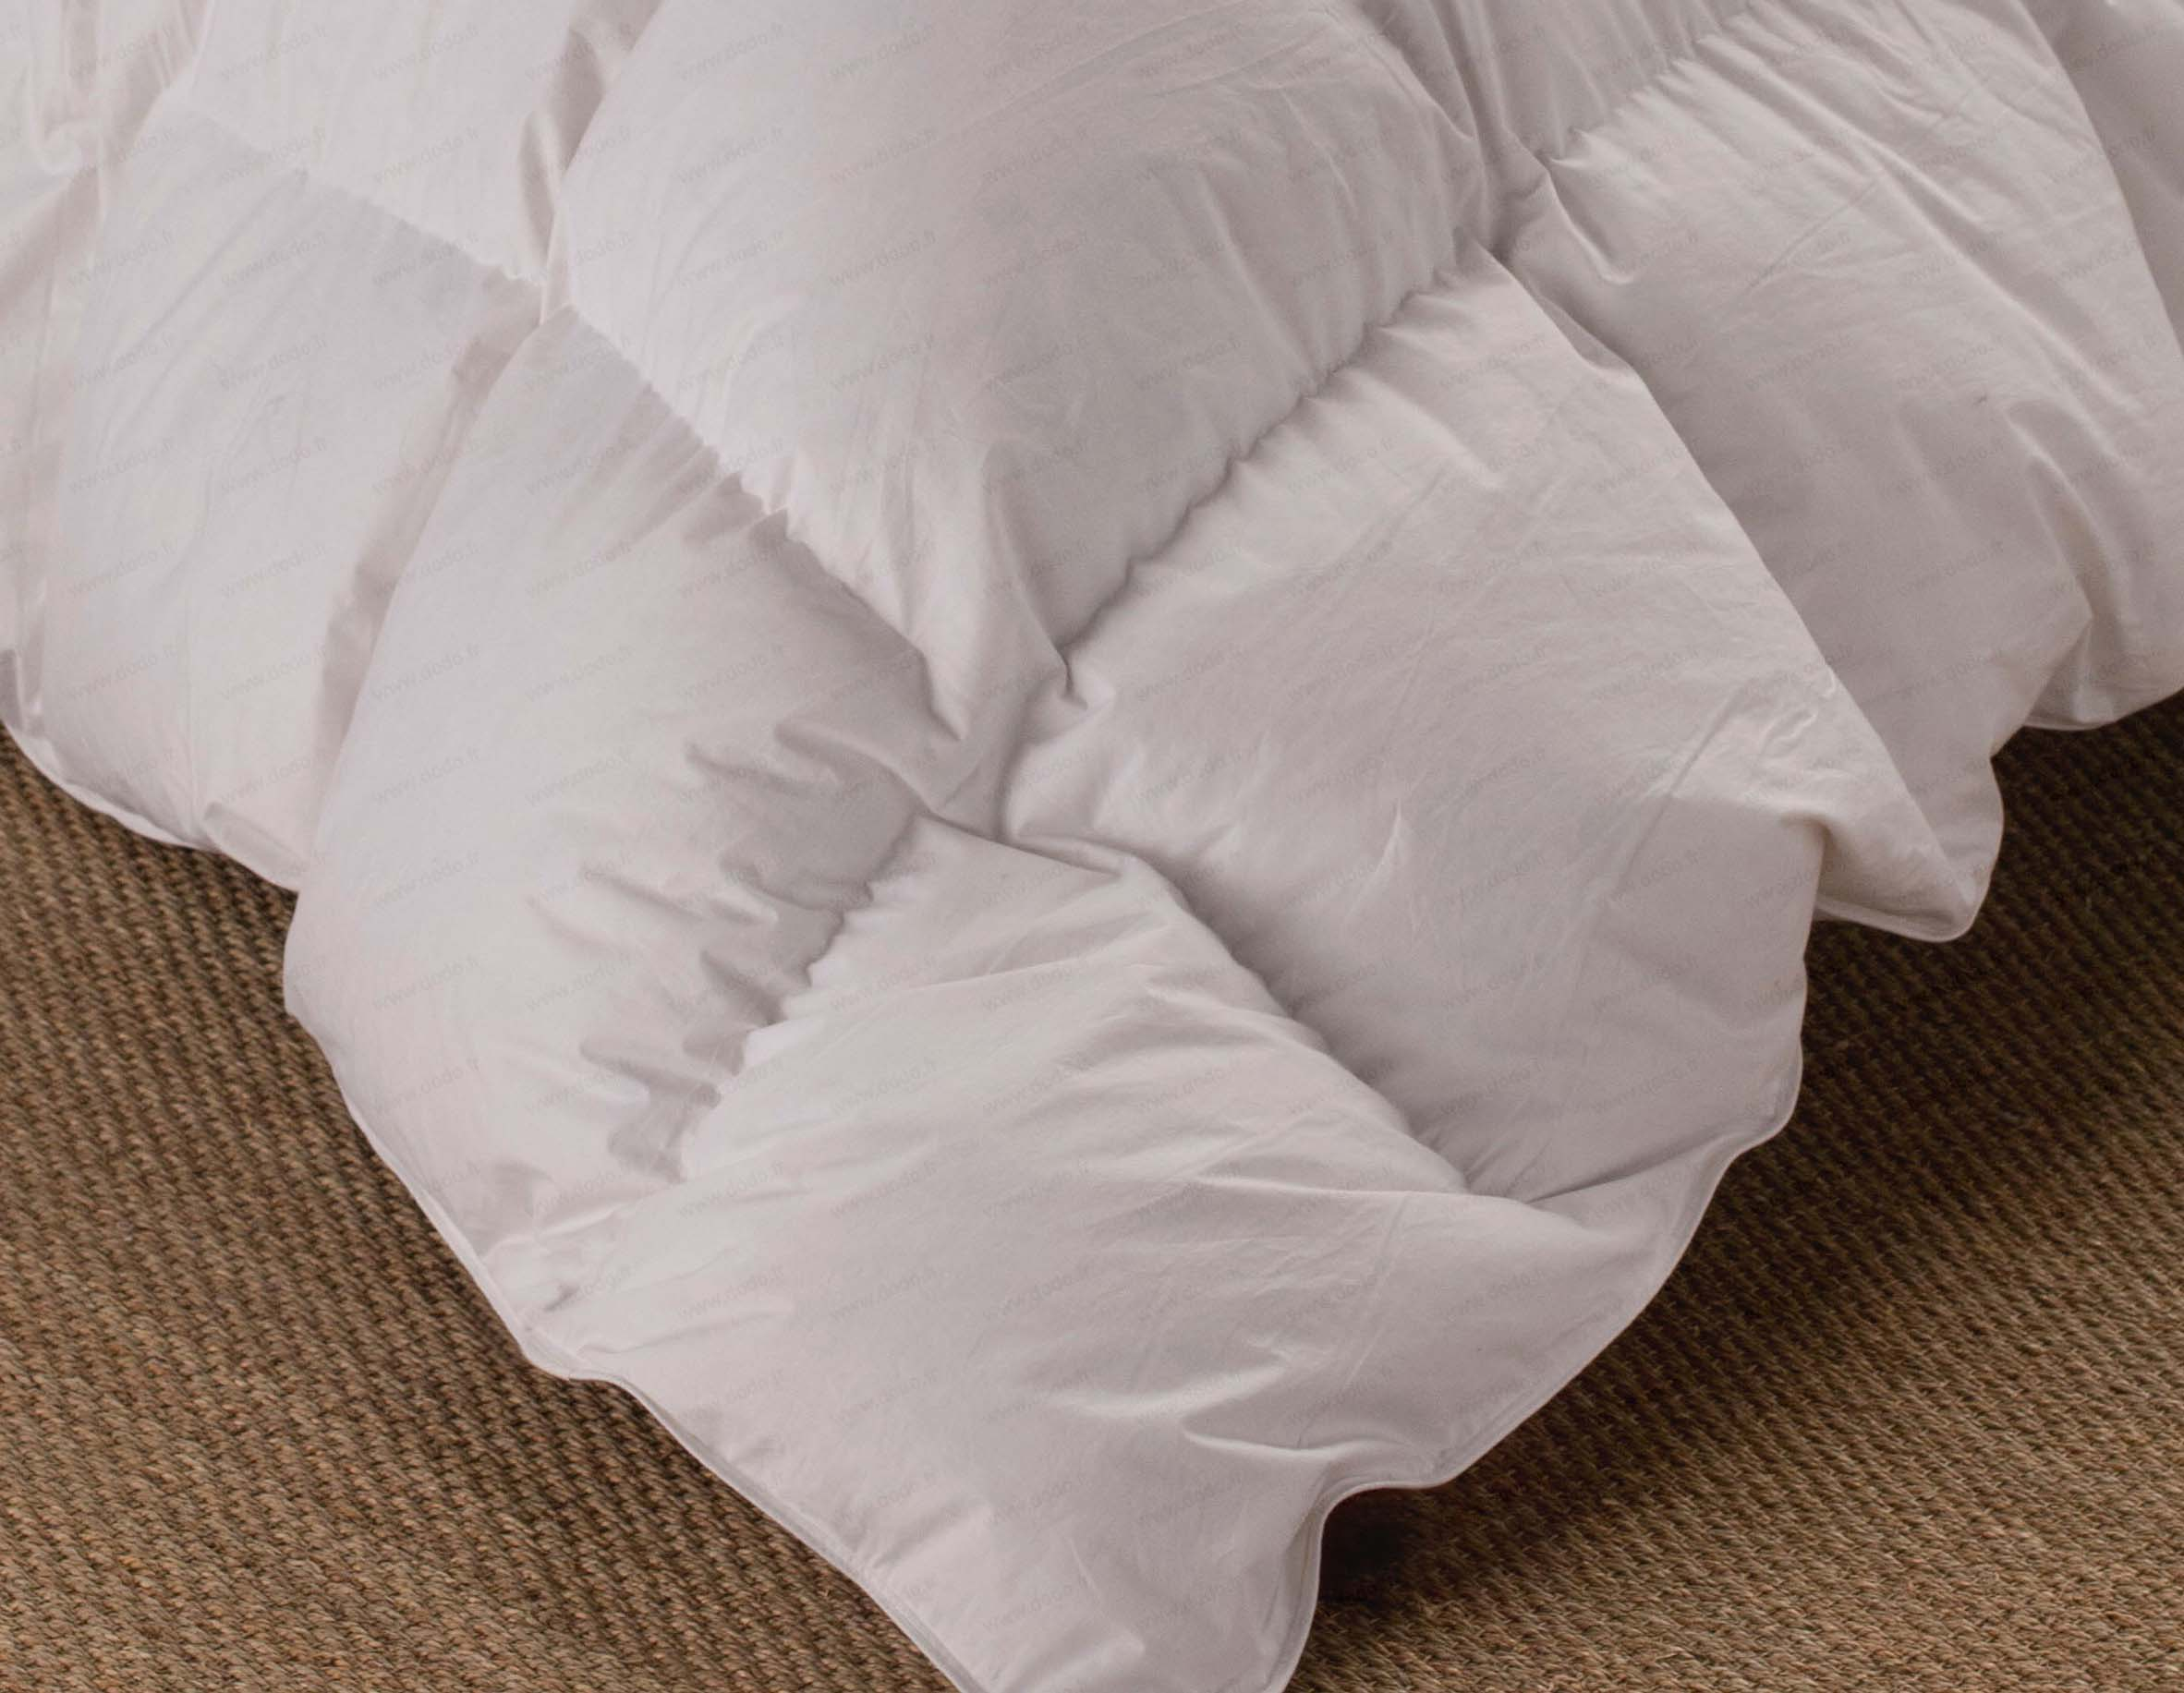 Soldes 2014 - Couette moelleuse ...